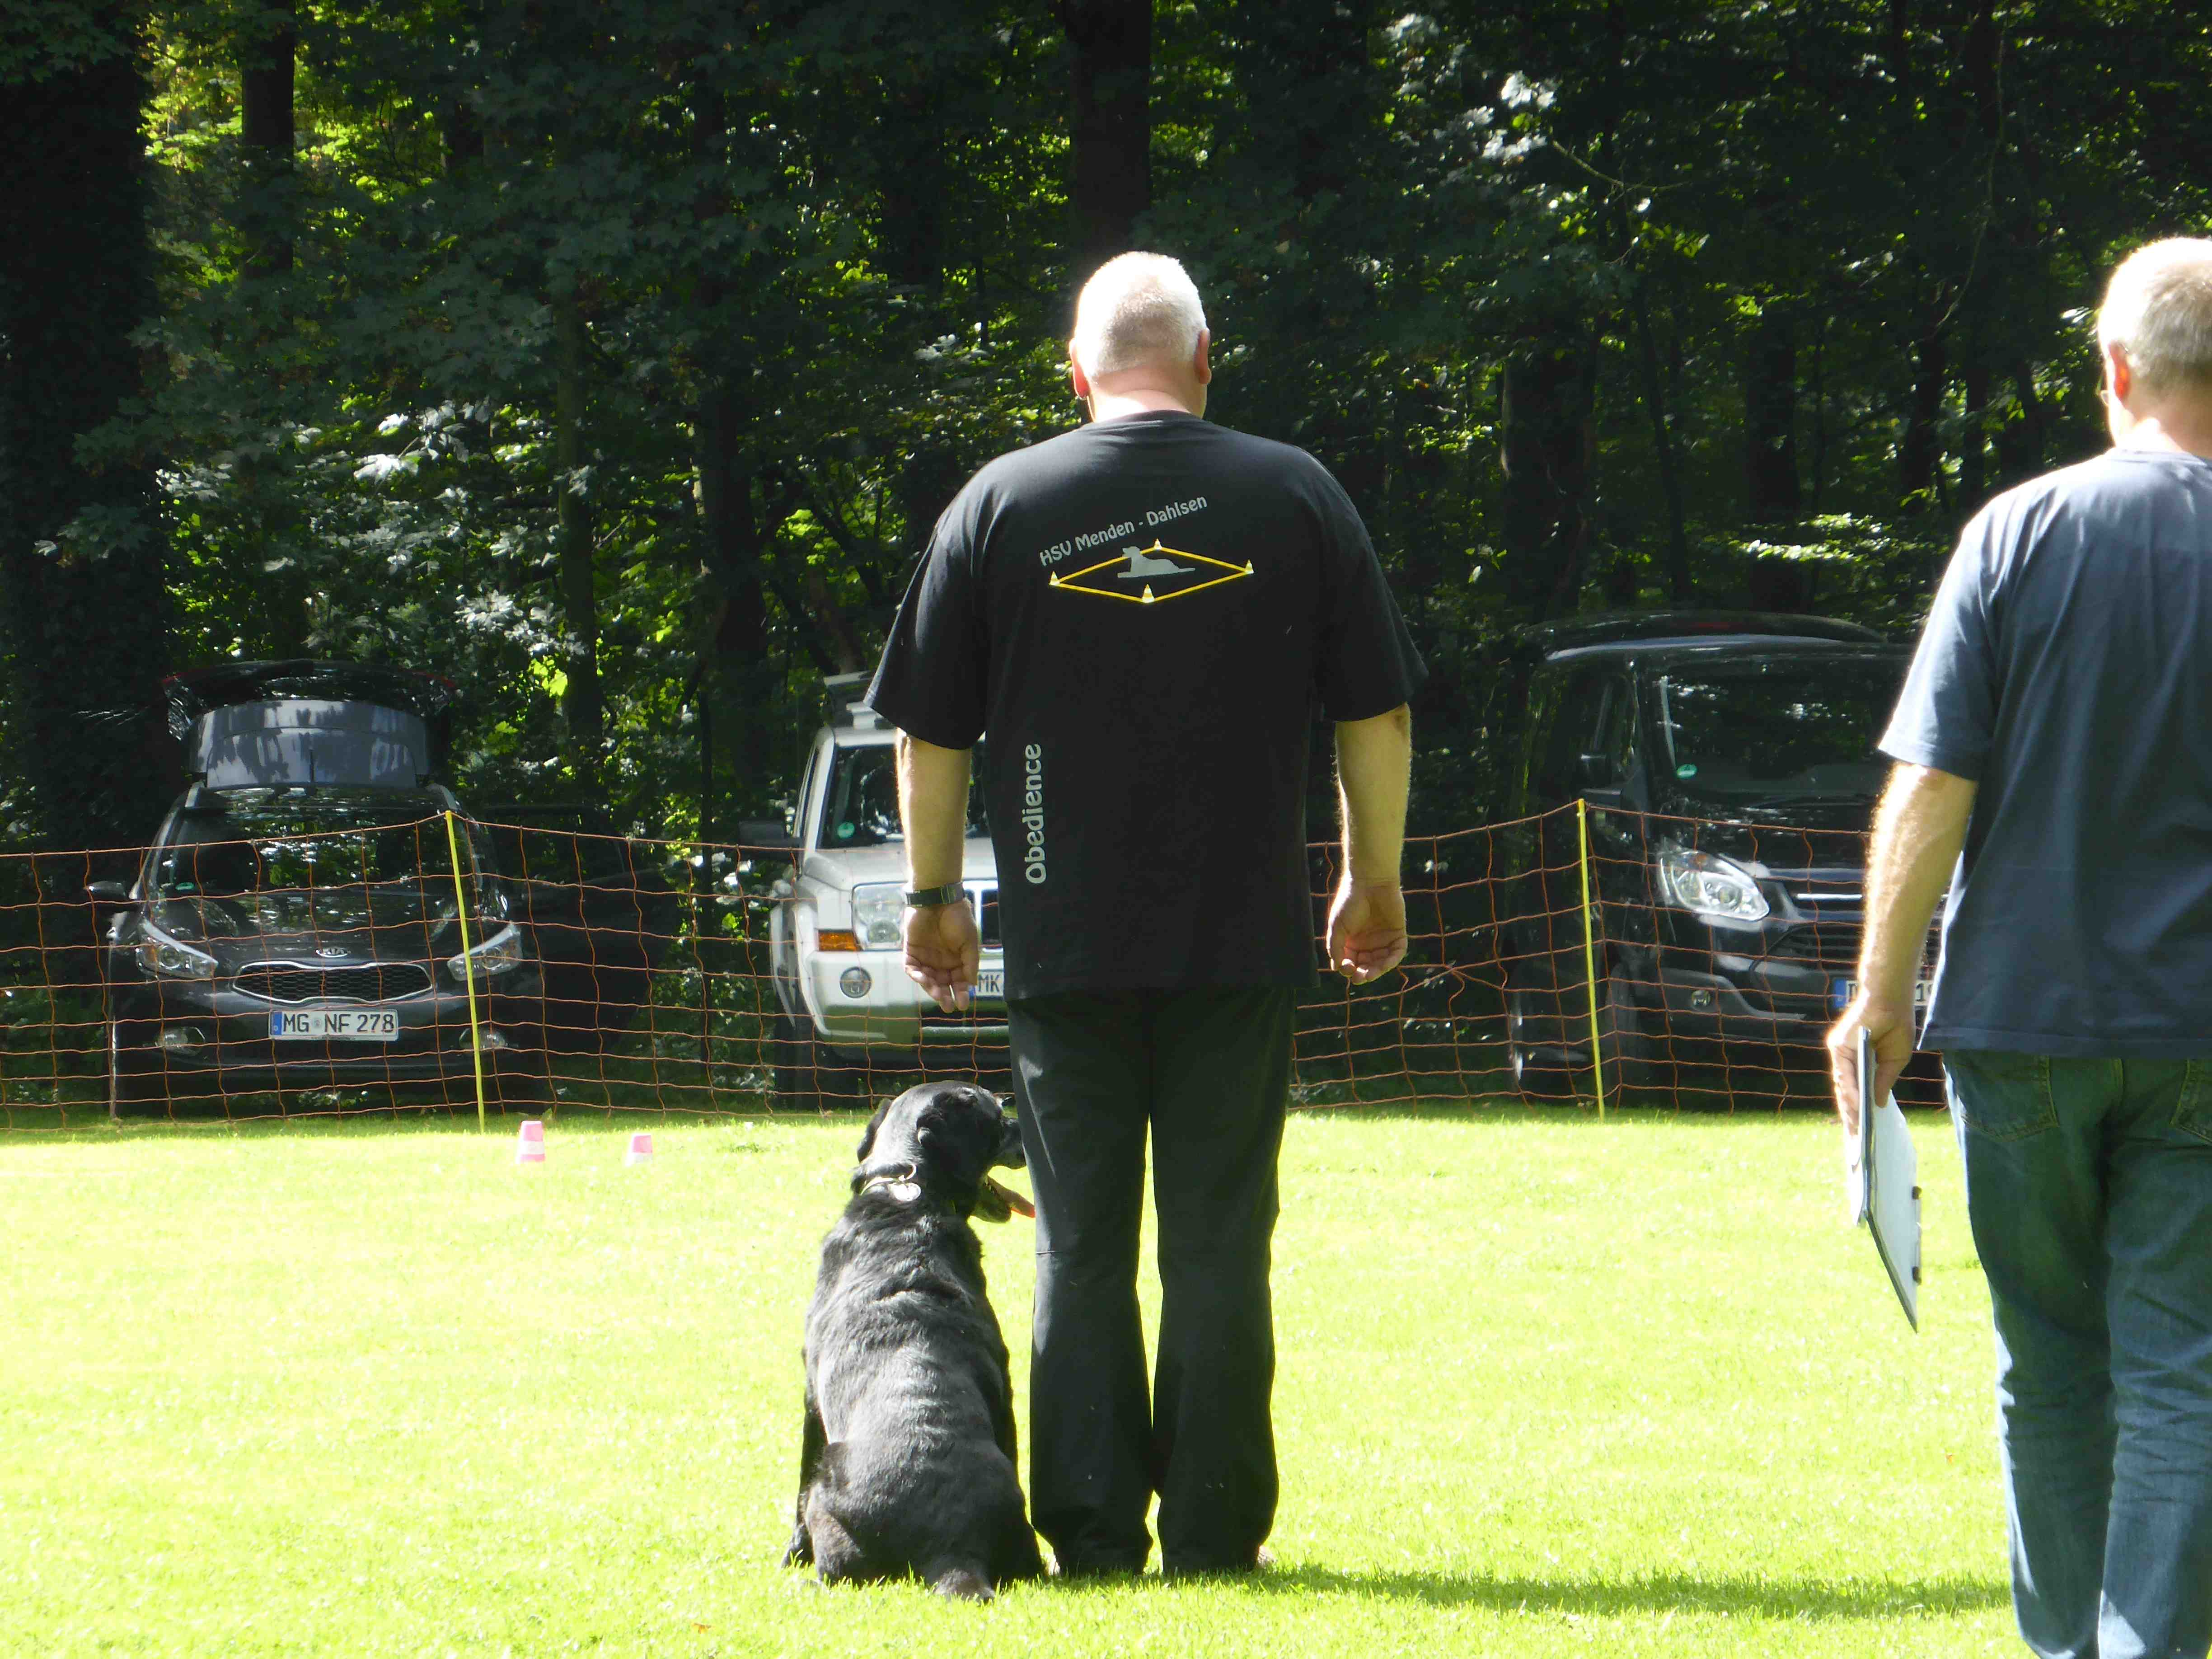 Photo of Obedience-Prüfung beim GHSV Duisburg-Rehwiese e.V. am 20.08.2016